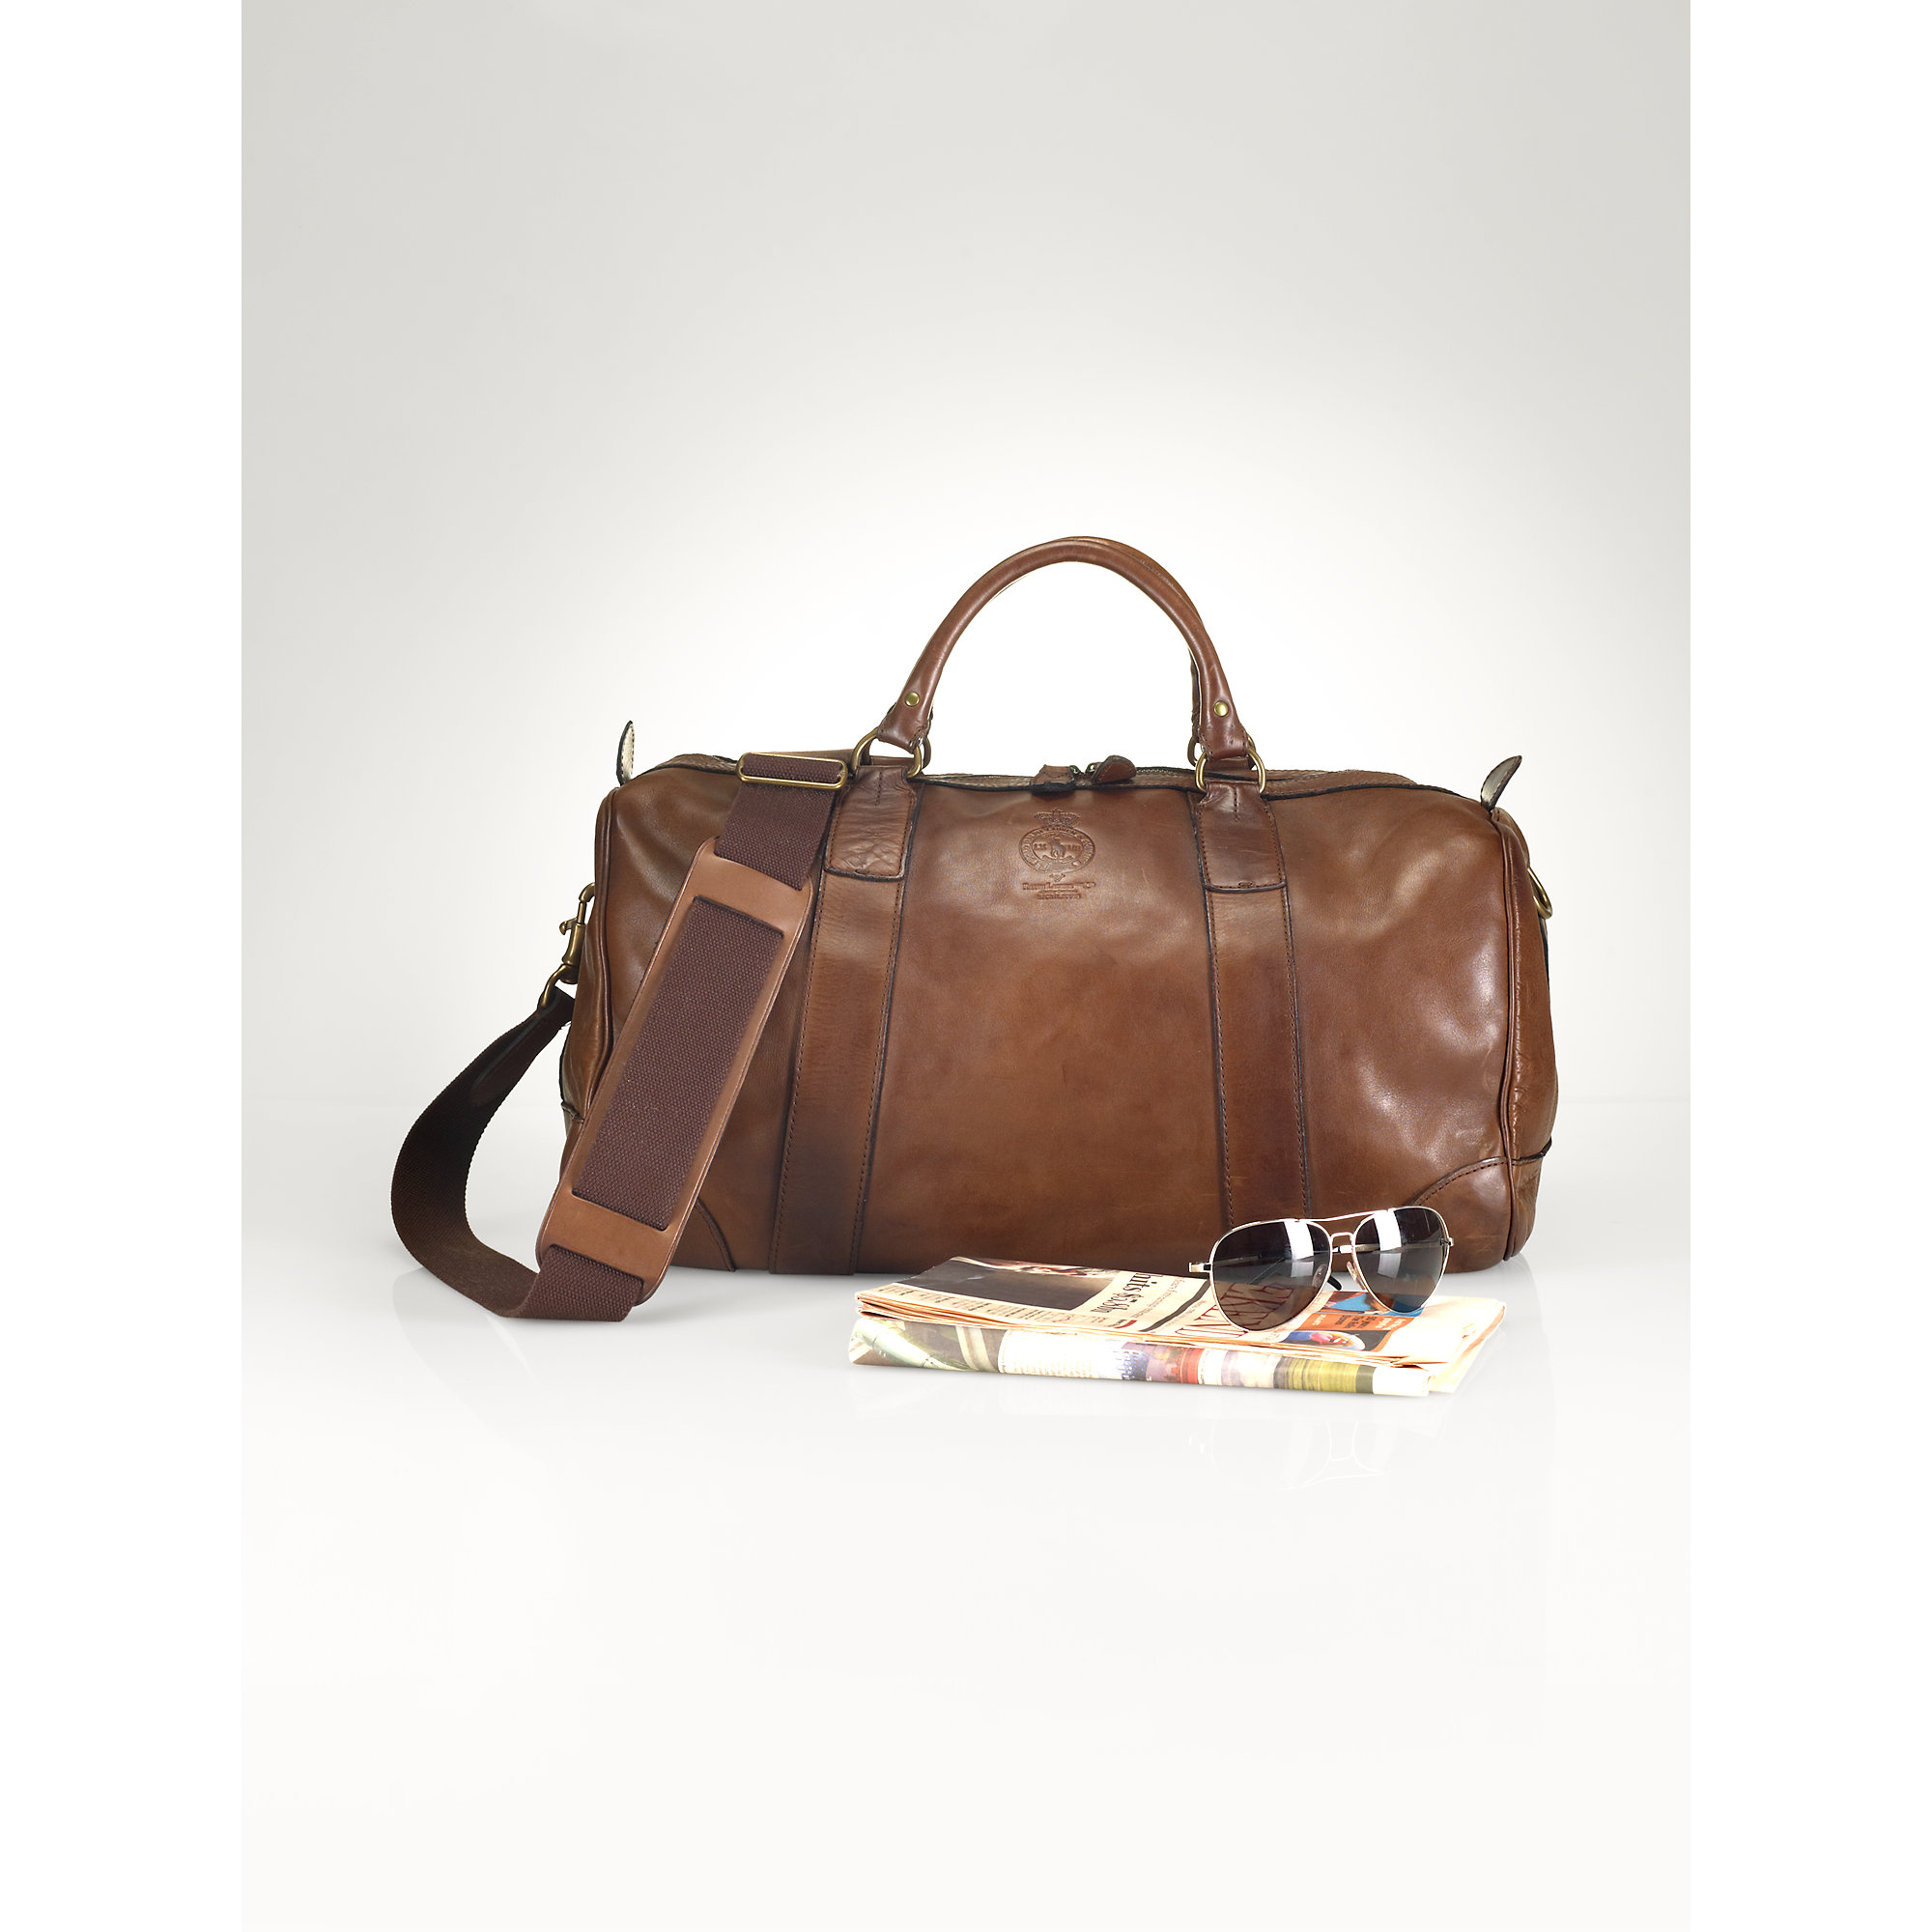 1f28d5a4295c ... usa lyst polo ralph lauren leather duffel bag in brown for men b3935  1a7ca cheap camo ...